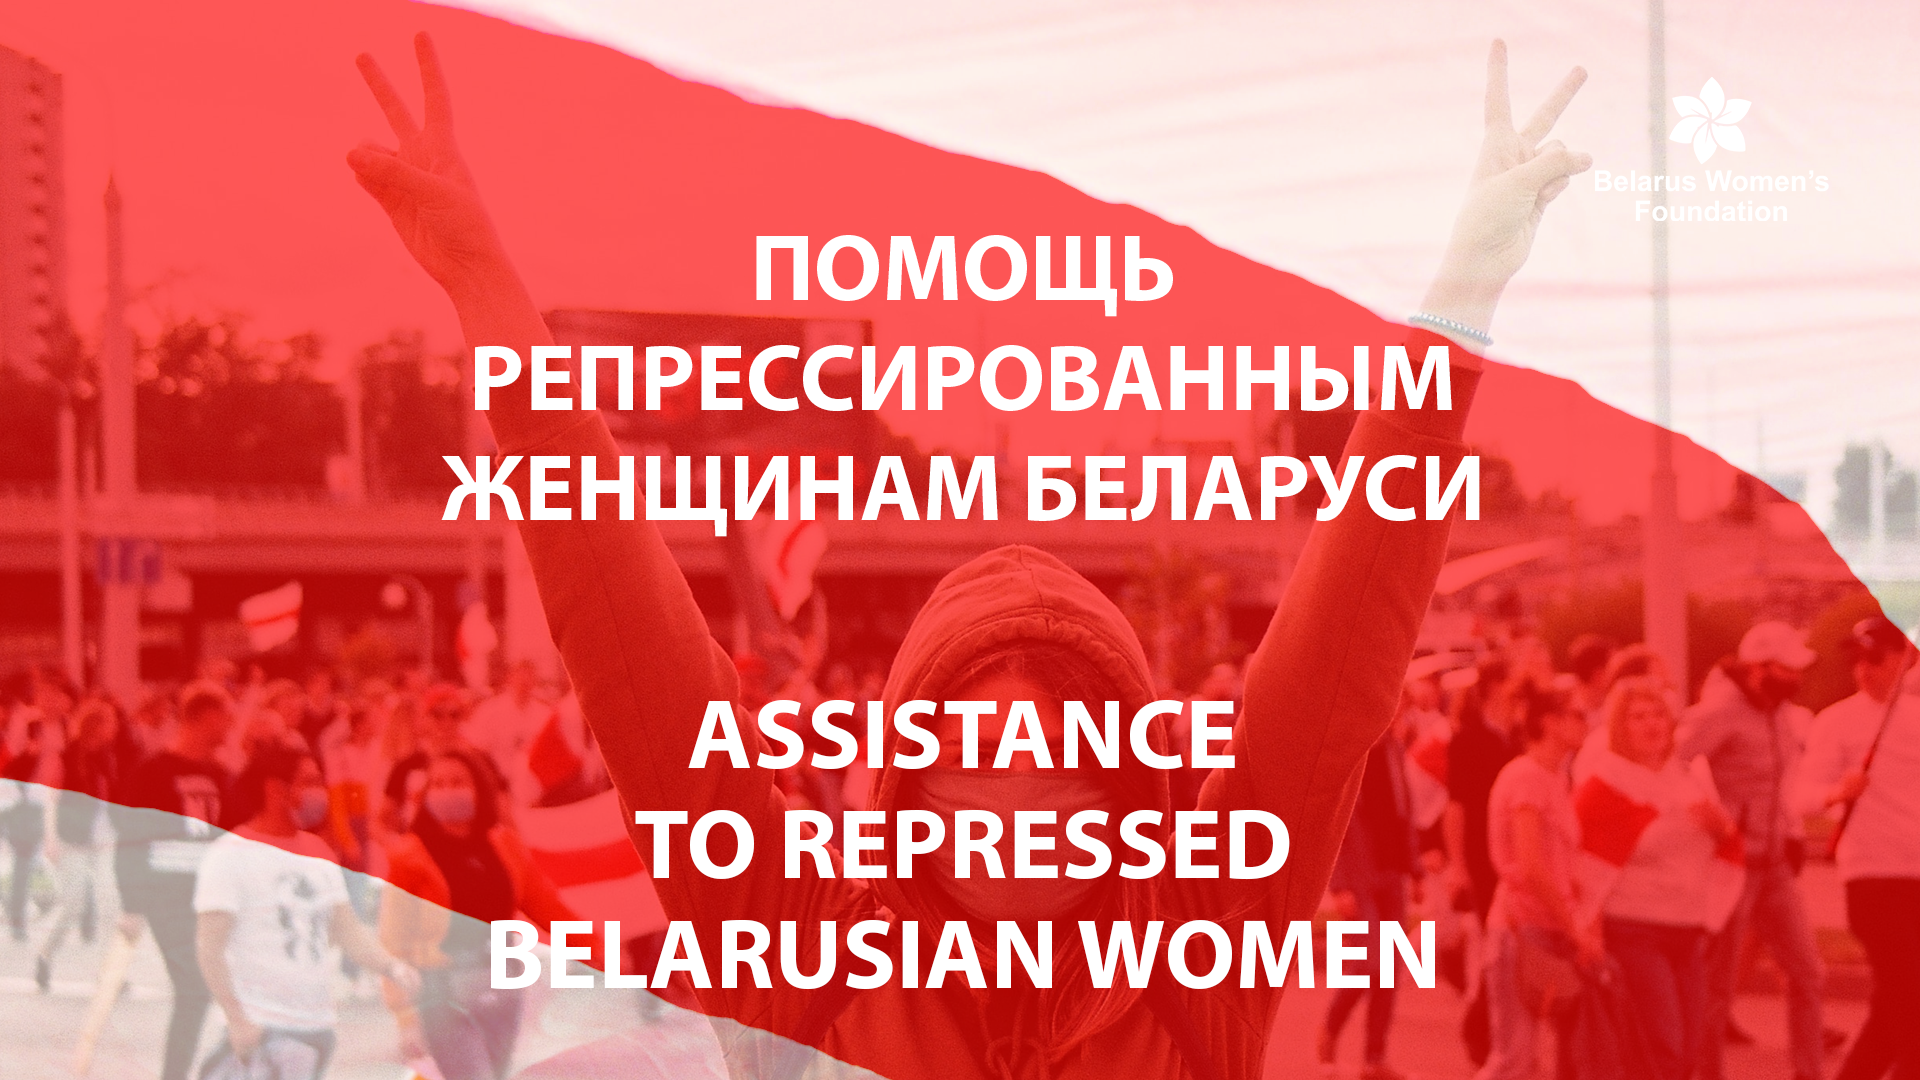 Assistance to politicaly persecuted women in Belarus